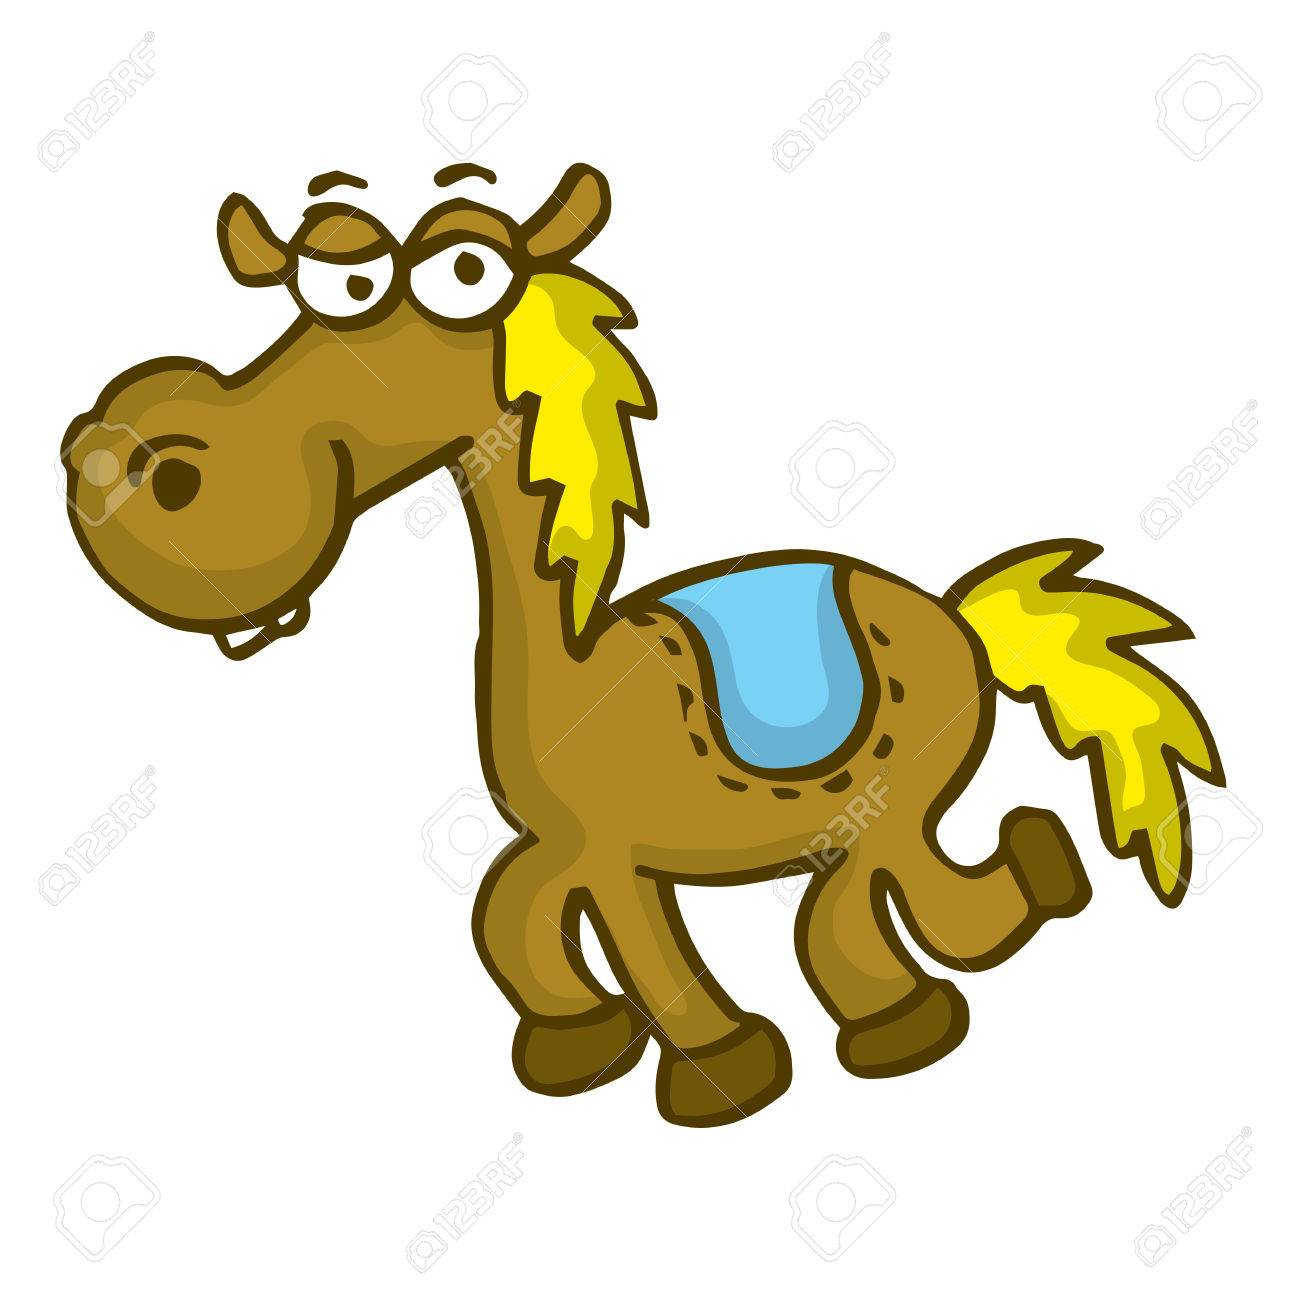 Happy Horse Funny Cartoon Vector Art Illustration Royalty Free Cliparts Vectors And Stock Illustration Image 67724717